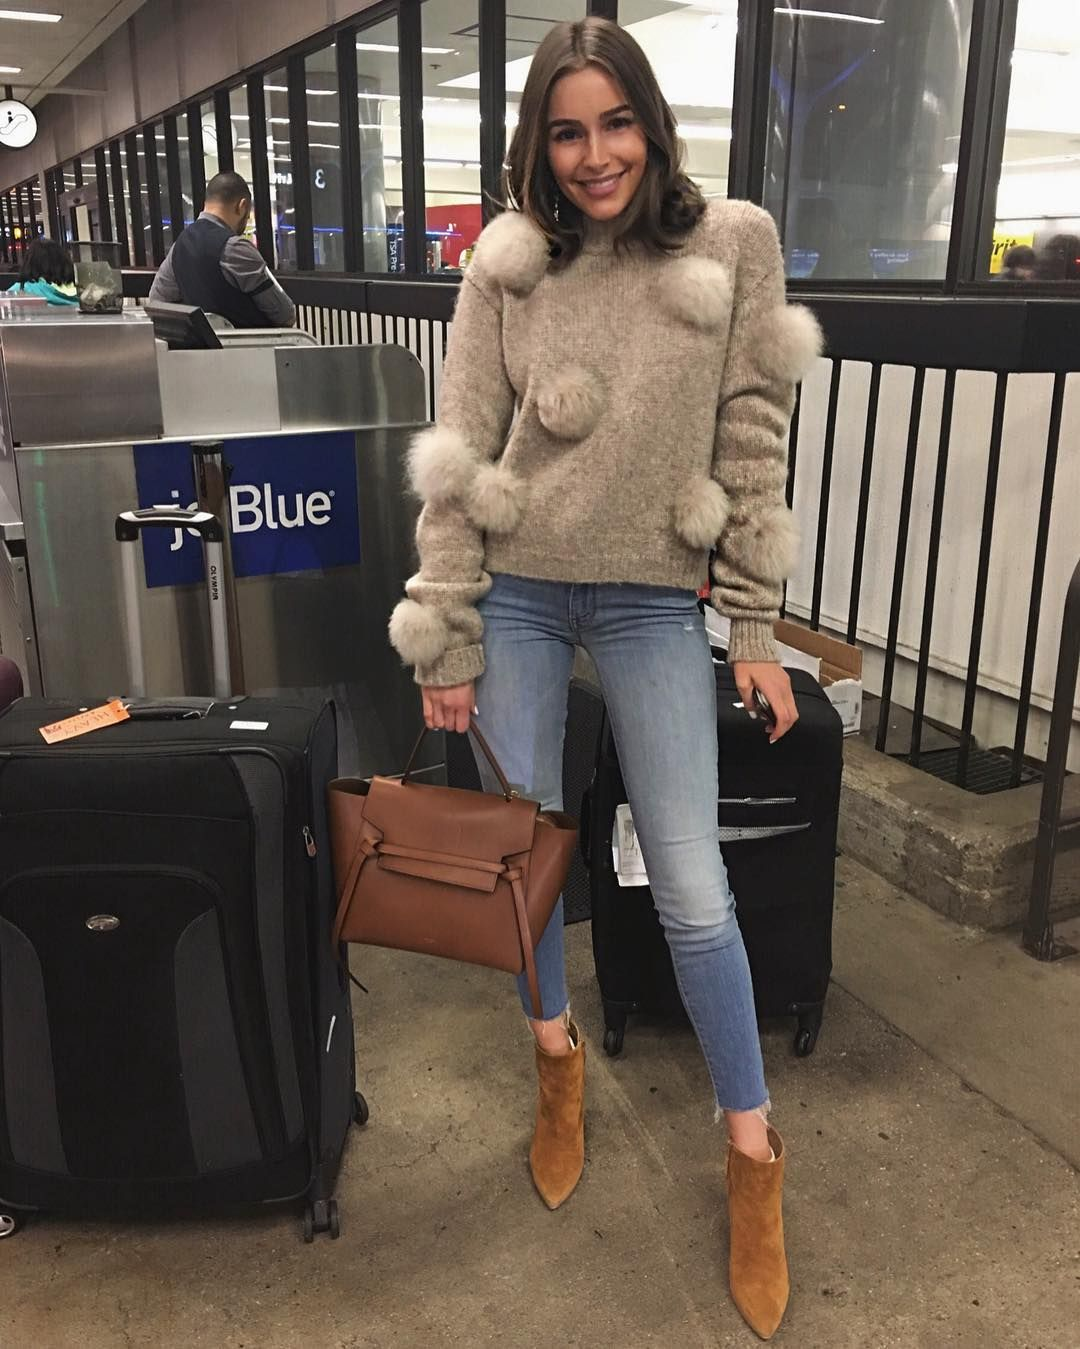 7745122a92f Awesome Olivia Culpo Fashion Style And Outfits 54. Paola Style for Winter  Fall. LANYC ✈  OCstreetstyle